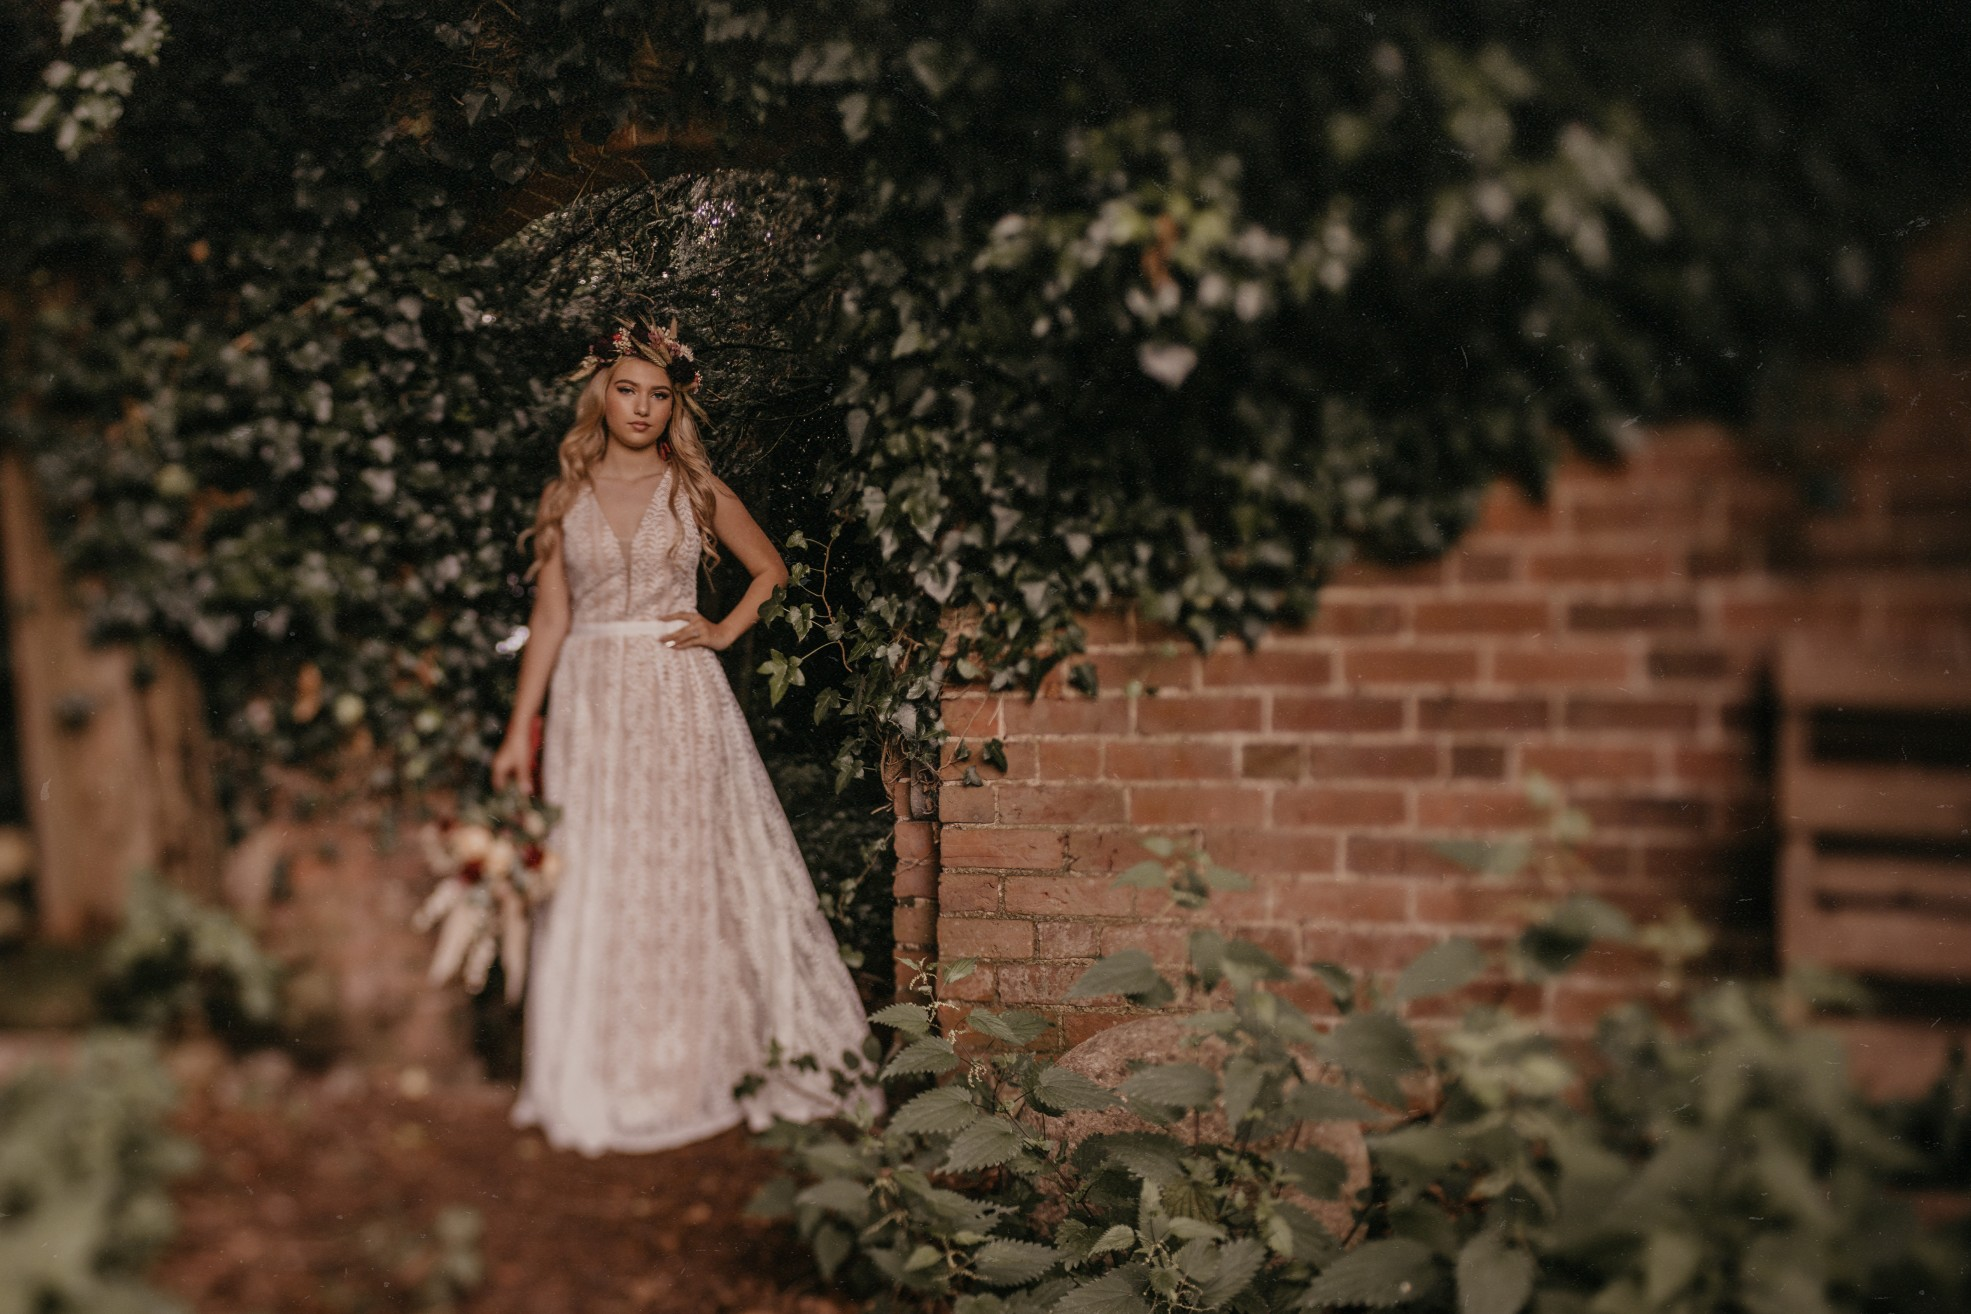 fairytale boho wedding - simple lace wedding dress and flower crown - secret garden wedding